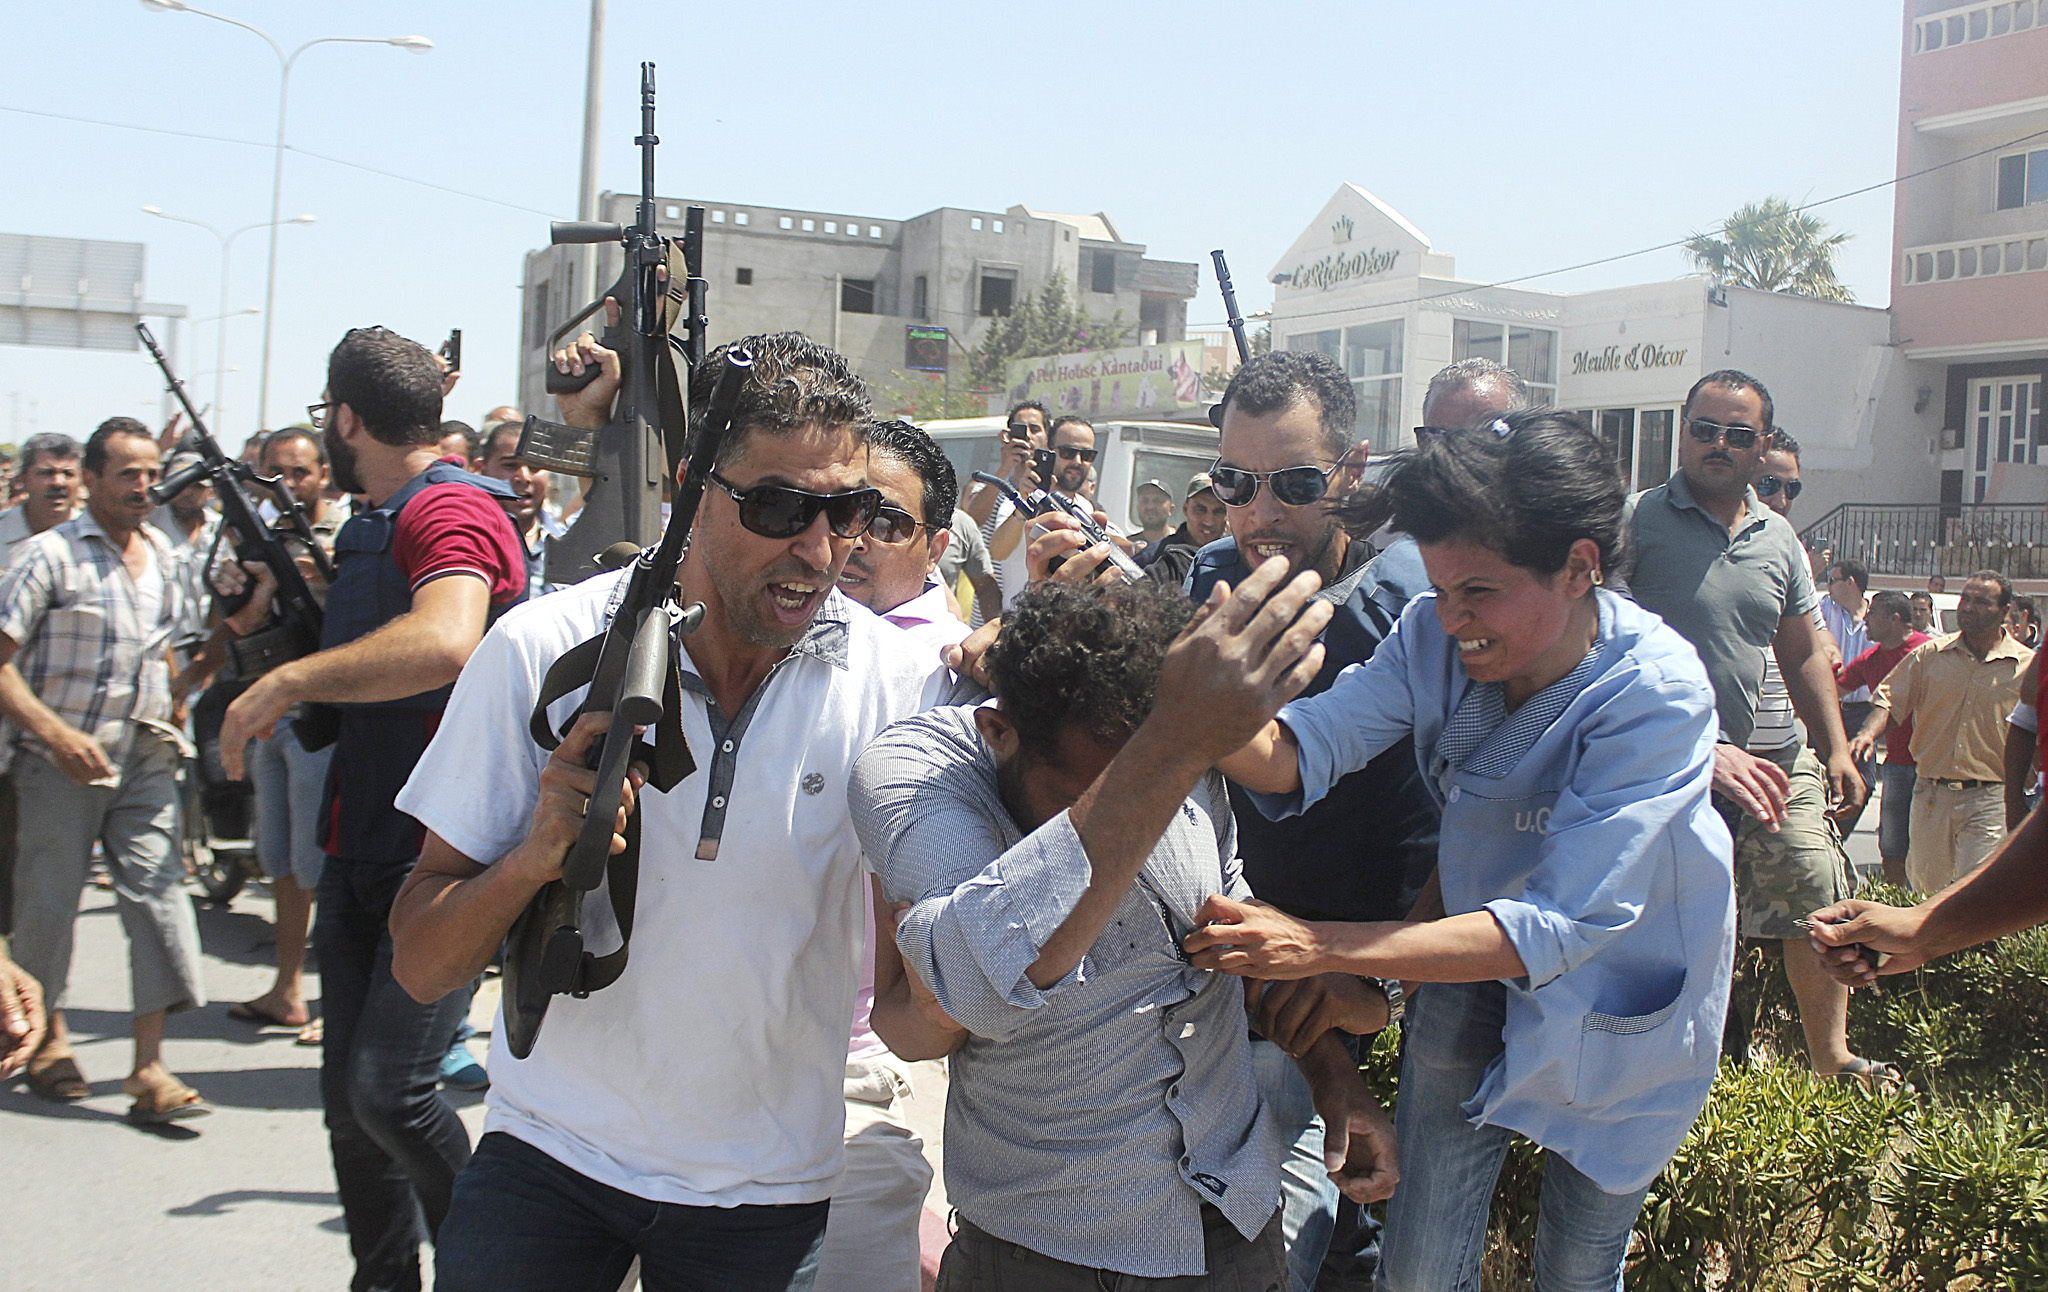 Police officers control the crowd while surrounding a man suspected to be involved in opening fire on a beachside hotel in Sousse...Police officers control the crowd (rear) while surrounding a man (front C) suspected to be involved in opening fire on a beachside hotel in Sousse, Tunisia, as a woman reacts(R), June 26, 2015. At least 27 people, including foreign tourists, were killed when at least one gunman opened fire on a Tunisian beachside hotel in the popular resort of Sousse on Friday, an interior ministry spokesman said. Police were still clearing the area around the Imperial Marhaba hotel and the body of one gunman lay at the scene with a Kalashnikov assault rifle after he was shot in an exchange of gunfire, a security source at the scene said. REUTERS/Amine Ben Aziza   TPX IMAGES OF THE DAY